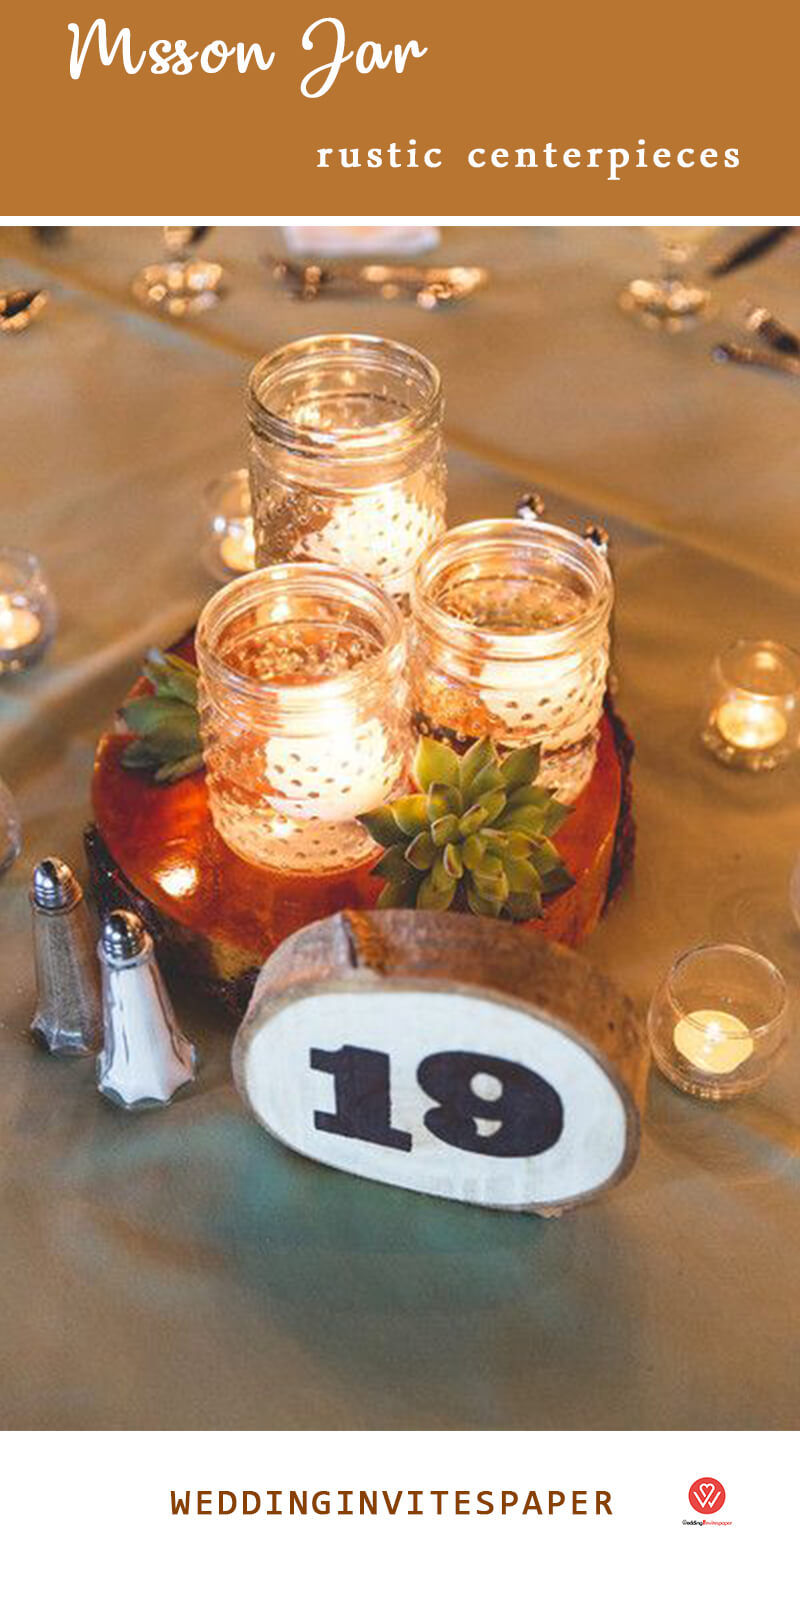 14 Mason Jar Table Number.jpg